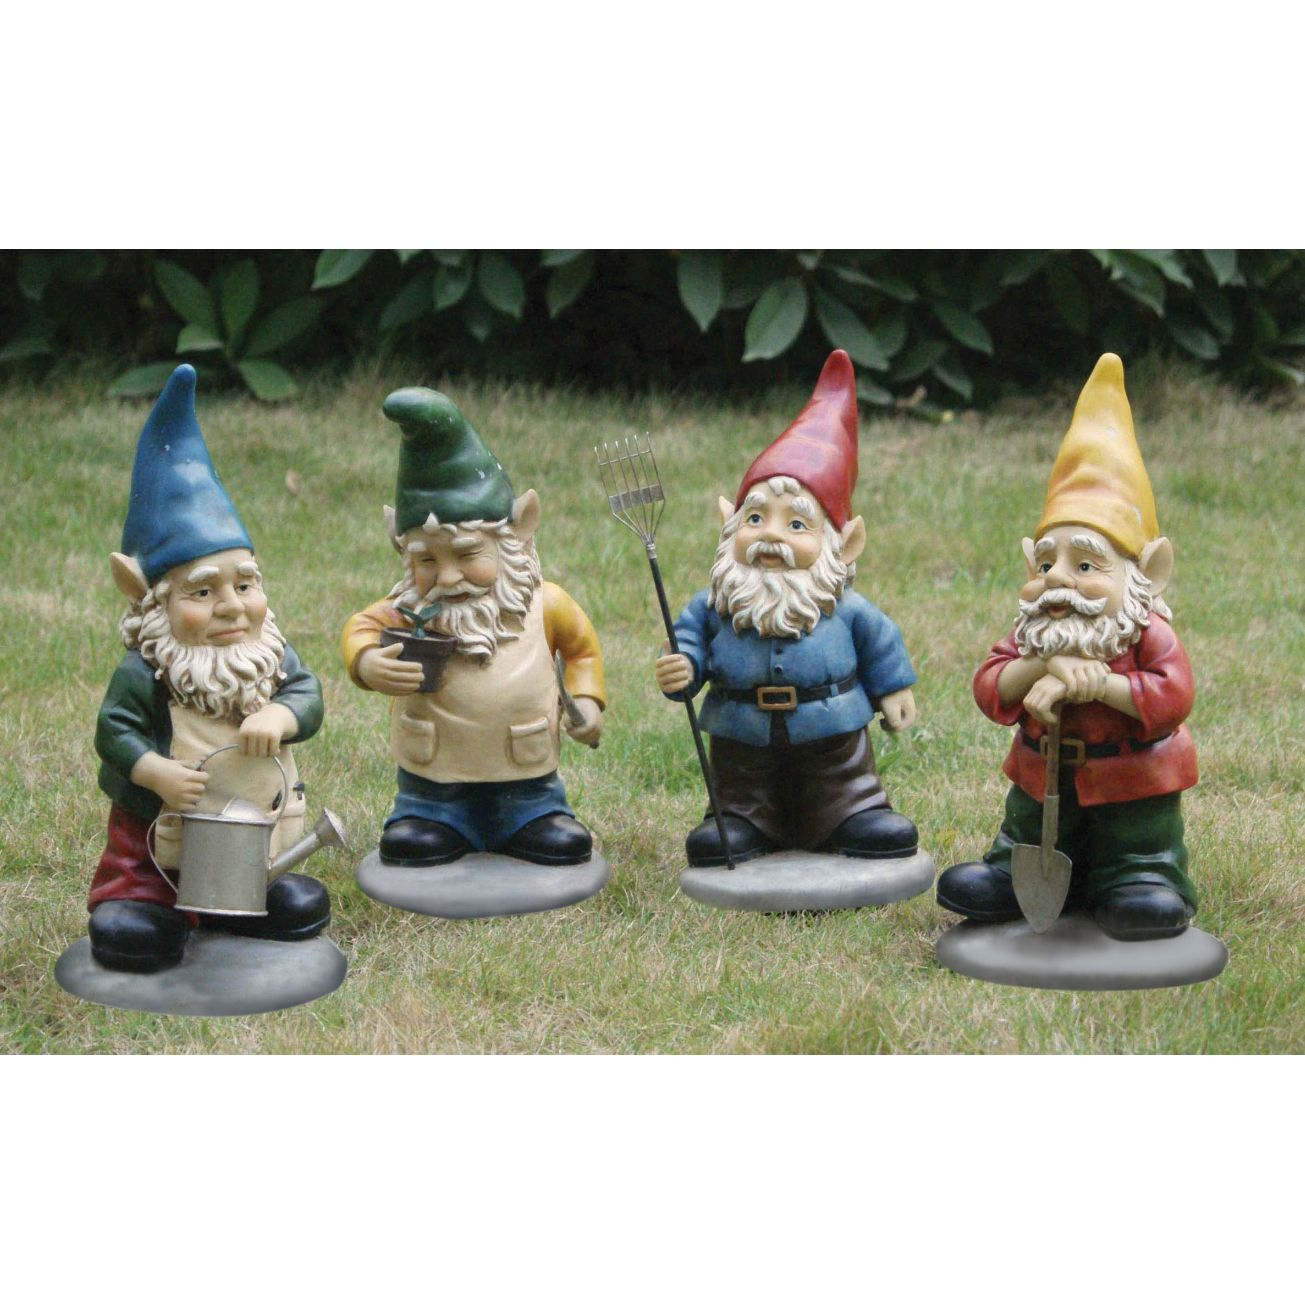 Assorted Garden Gnomes - Set of 4 - Lawn Ornaments - Ace Hardware ...